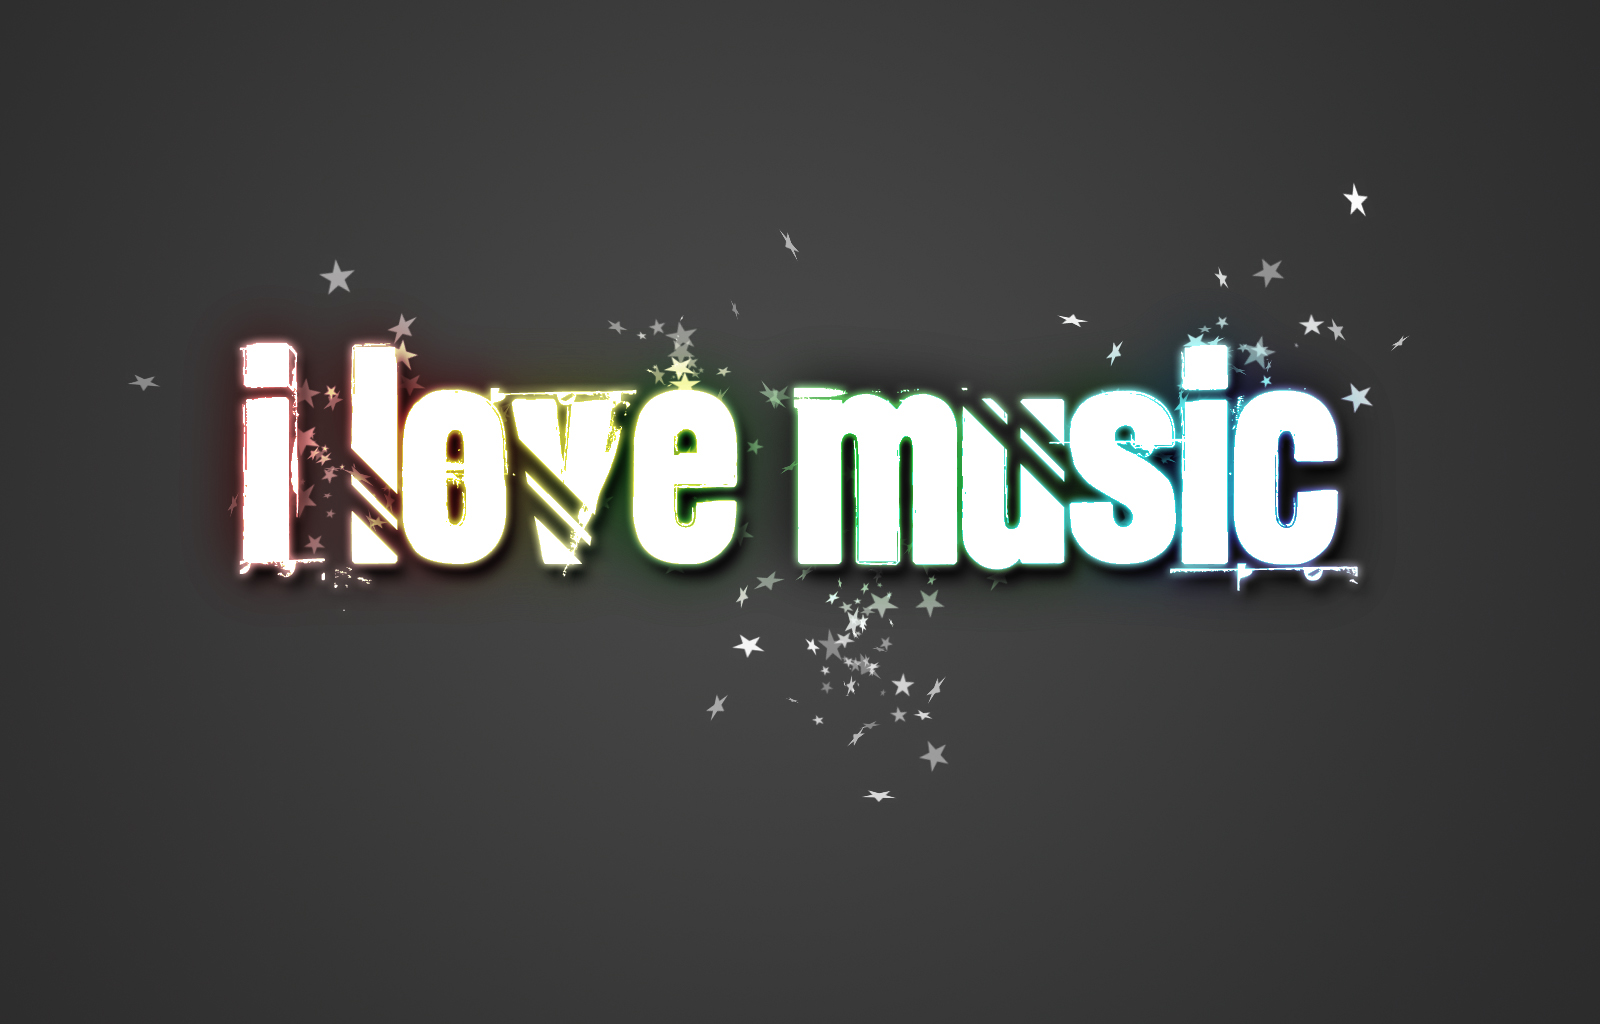 Free photo: I love Music - Wall, Wallpaper, Text - Free